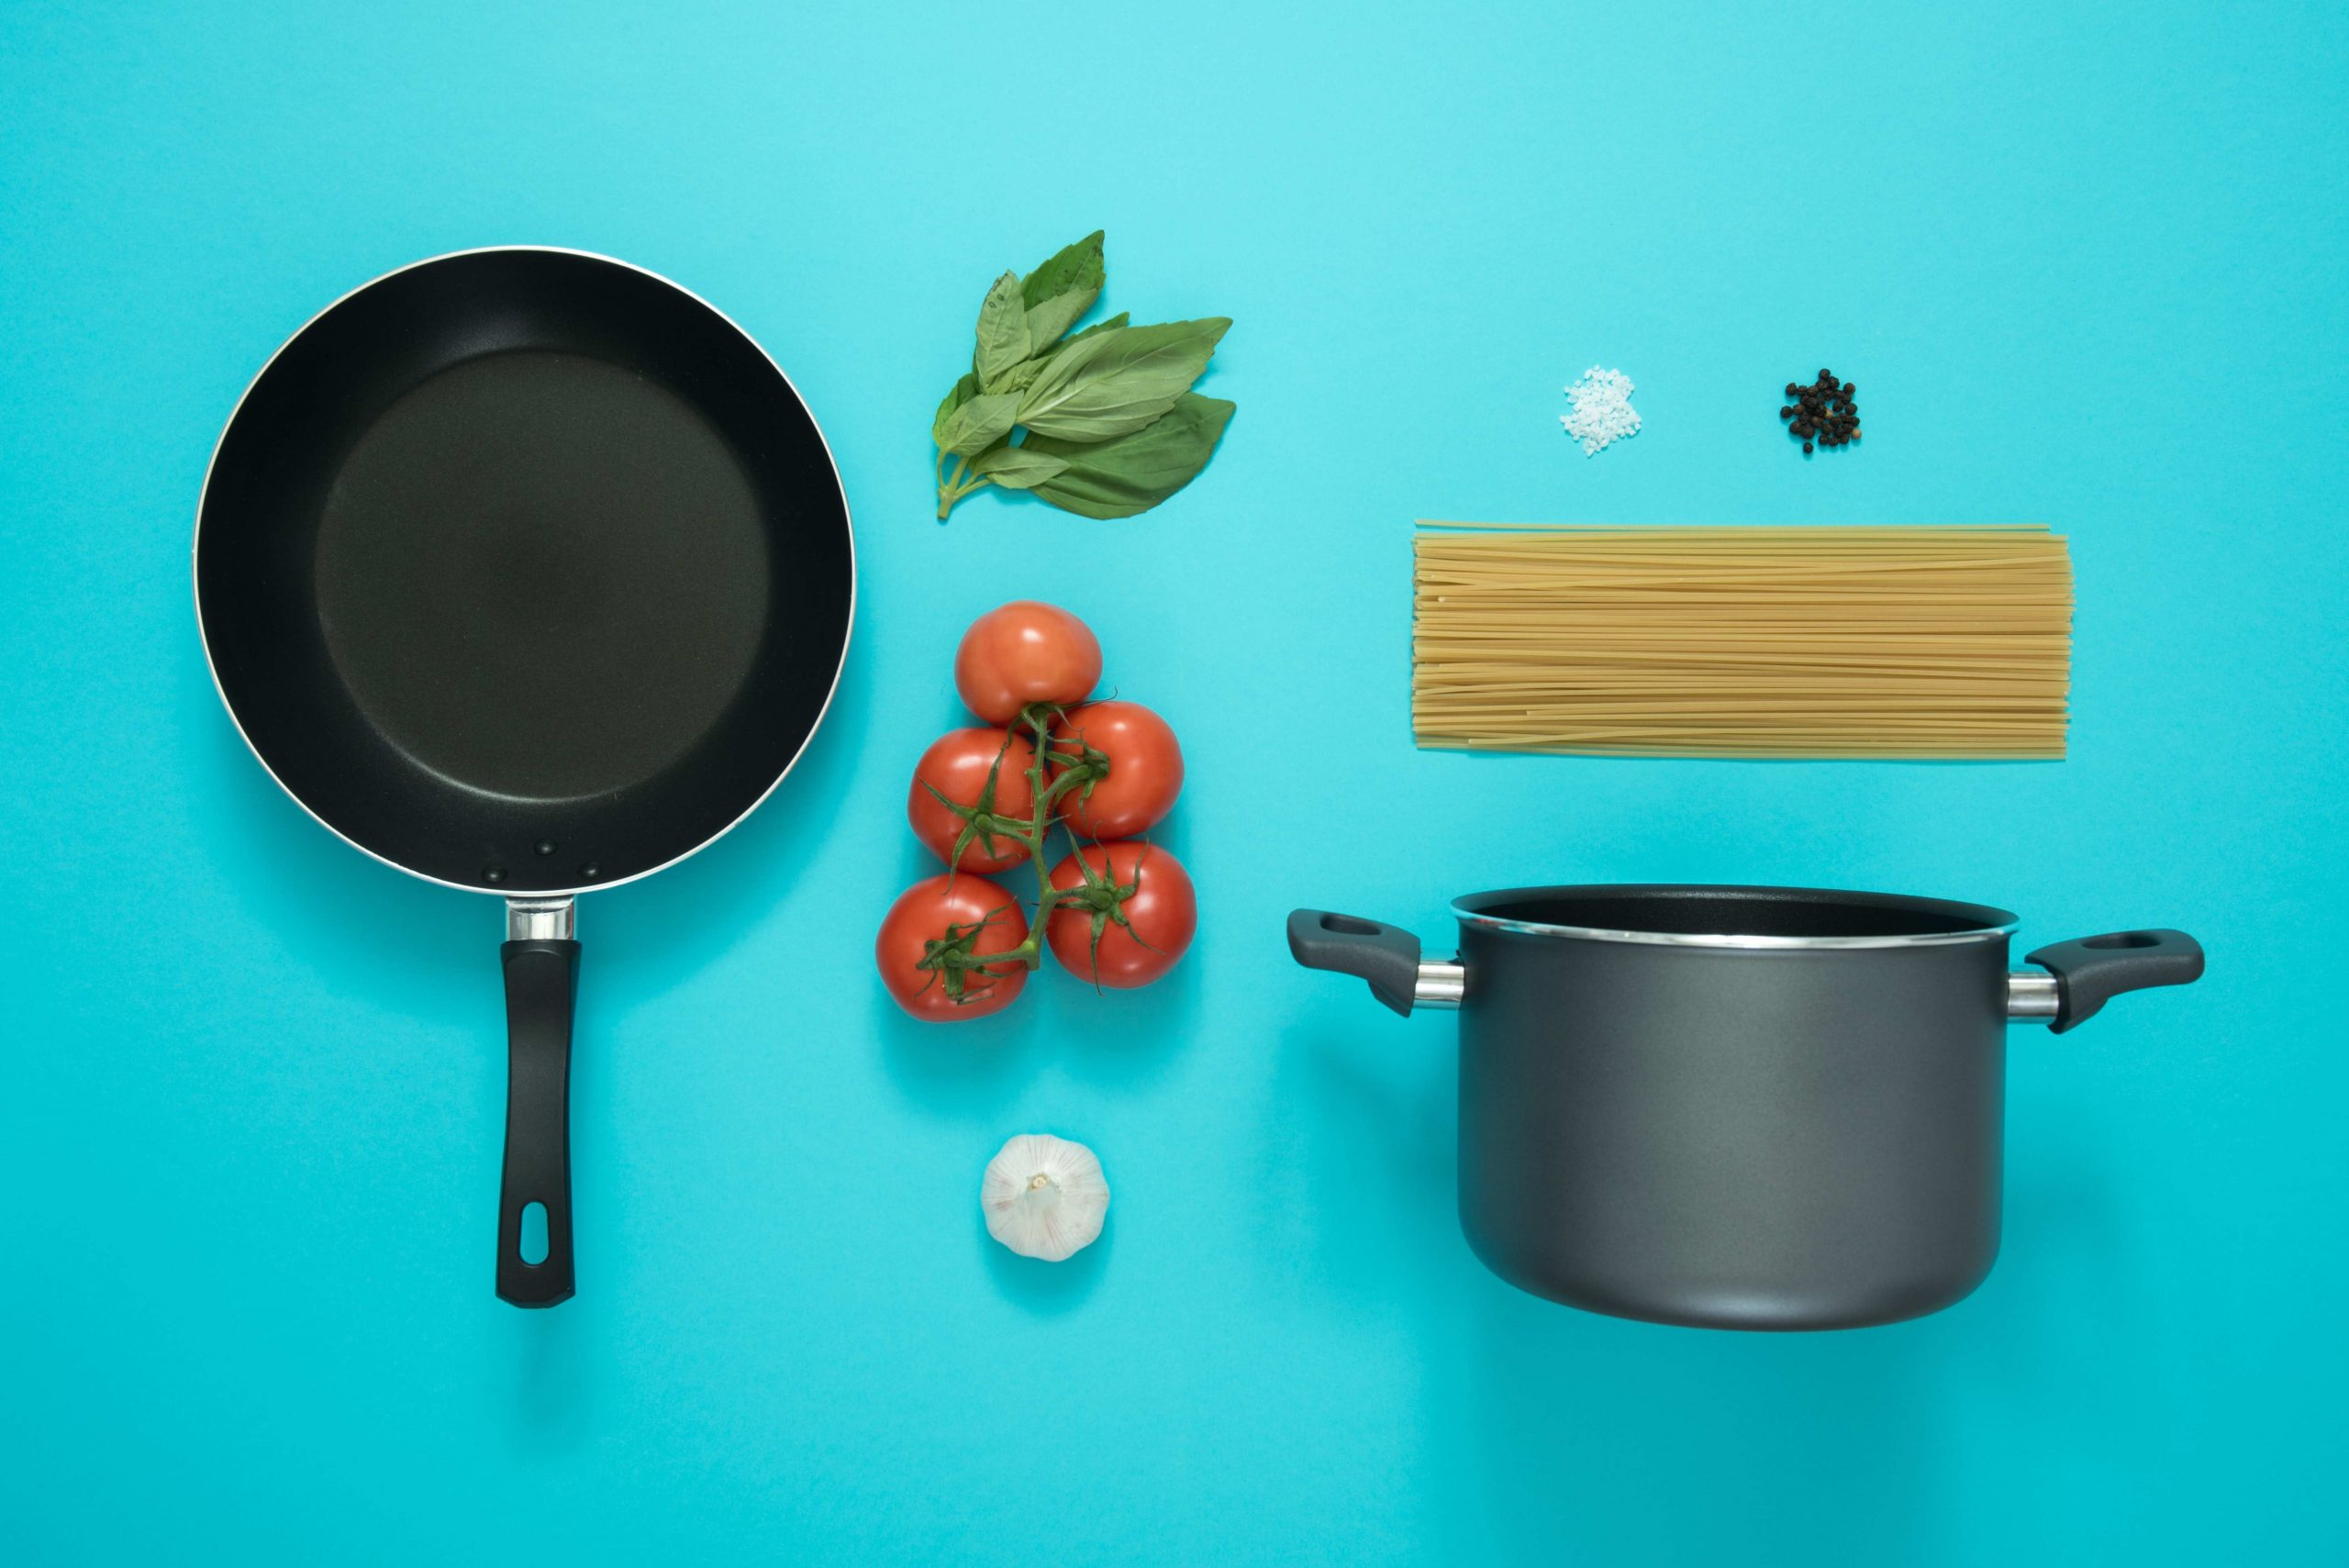 Stainless Steel VS Non-Stick Cookware – Whats The Difference?